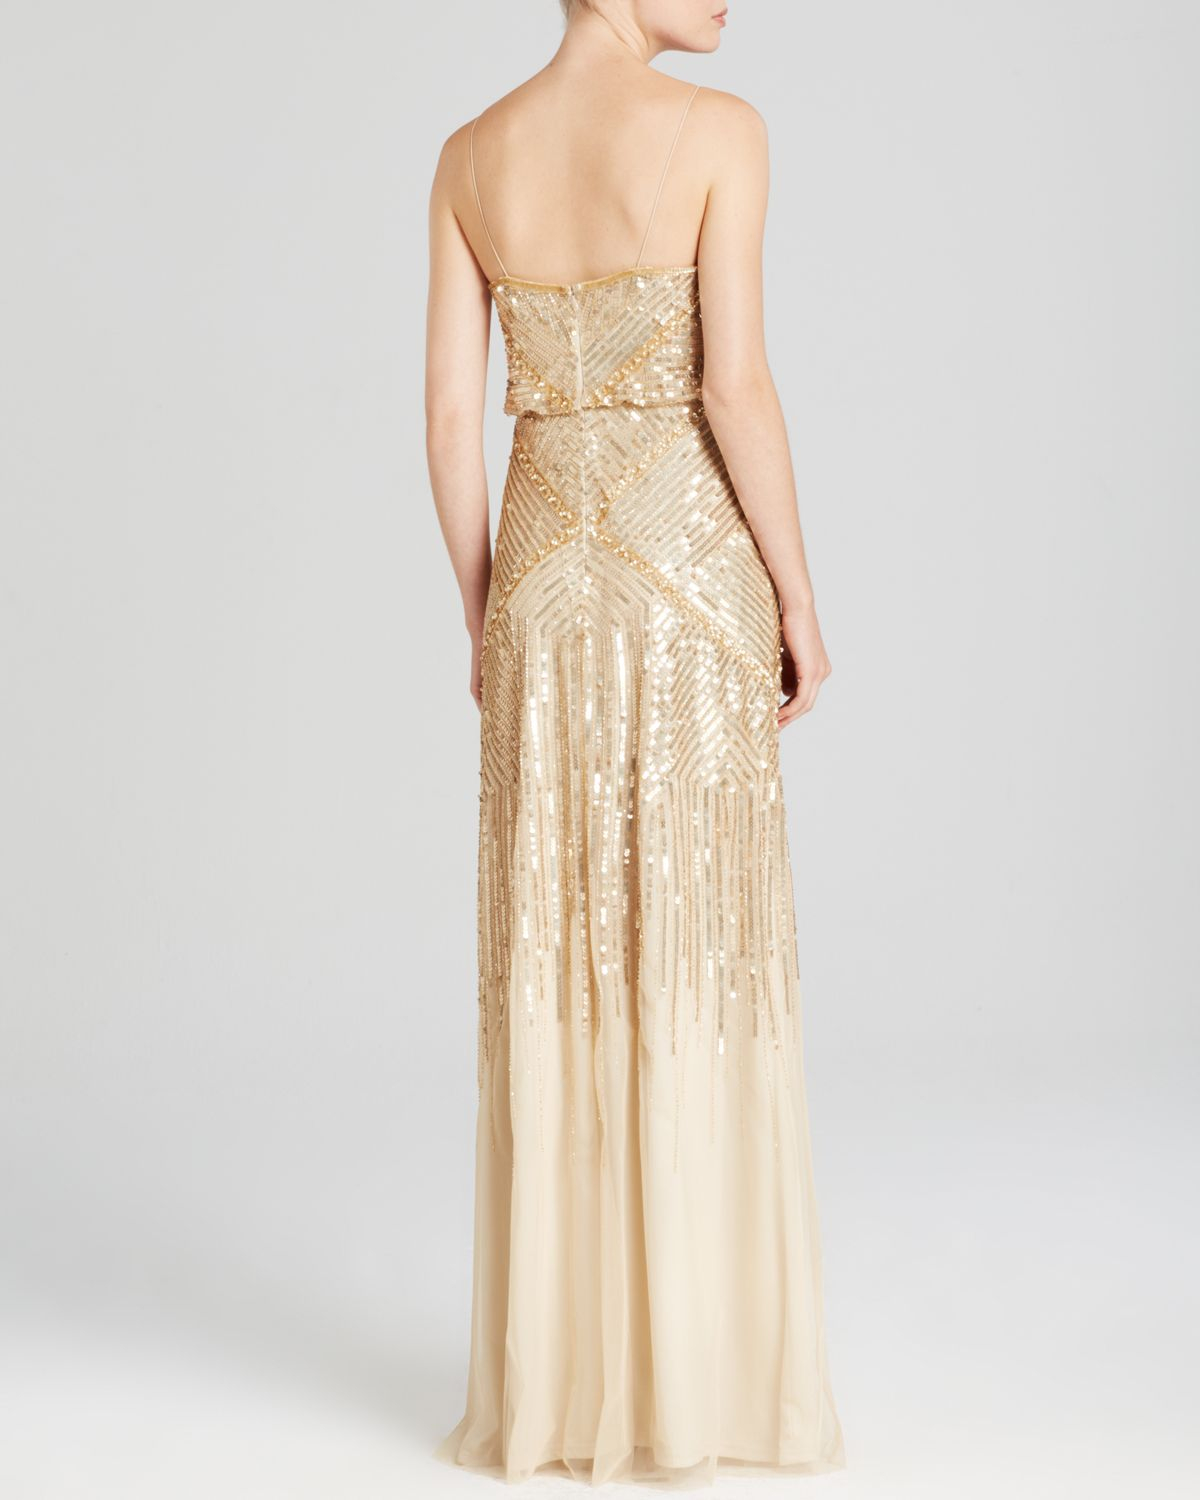 Lyst - Adrianna Papell Sleeveless Beaded Blouson Gown ...